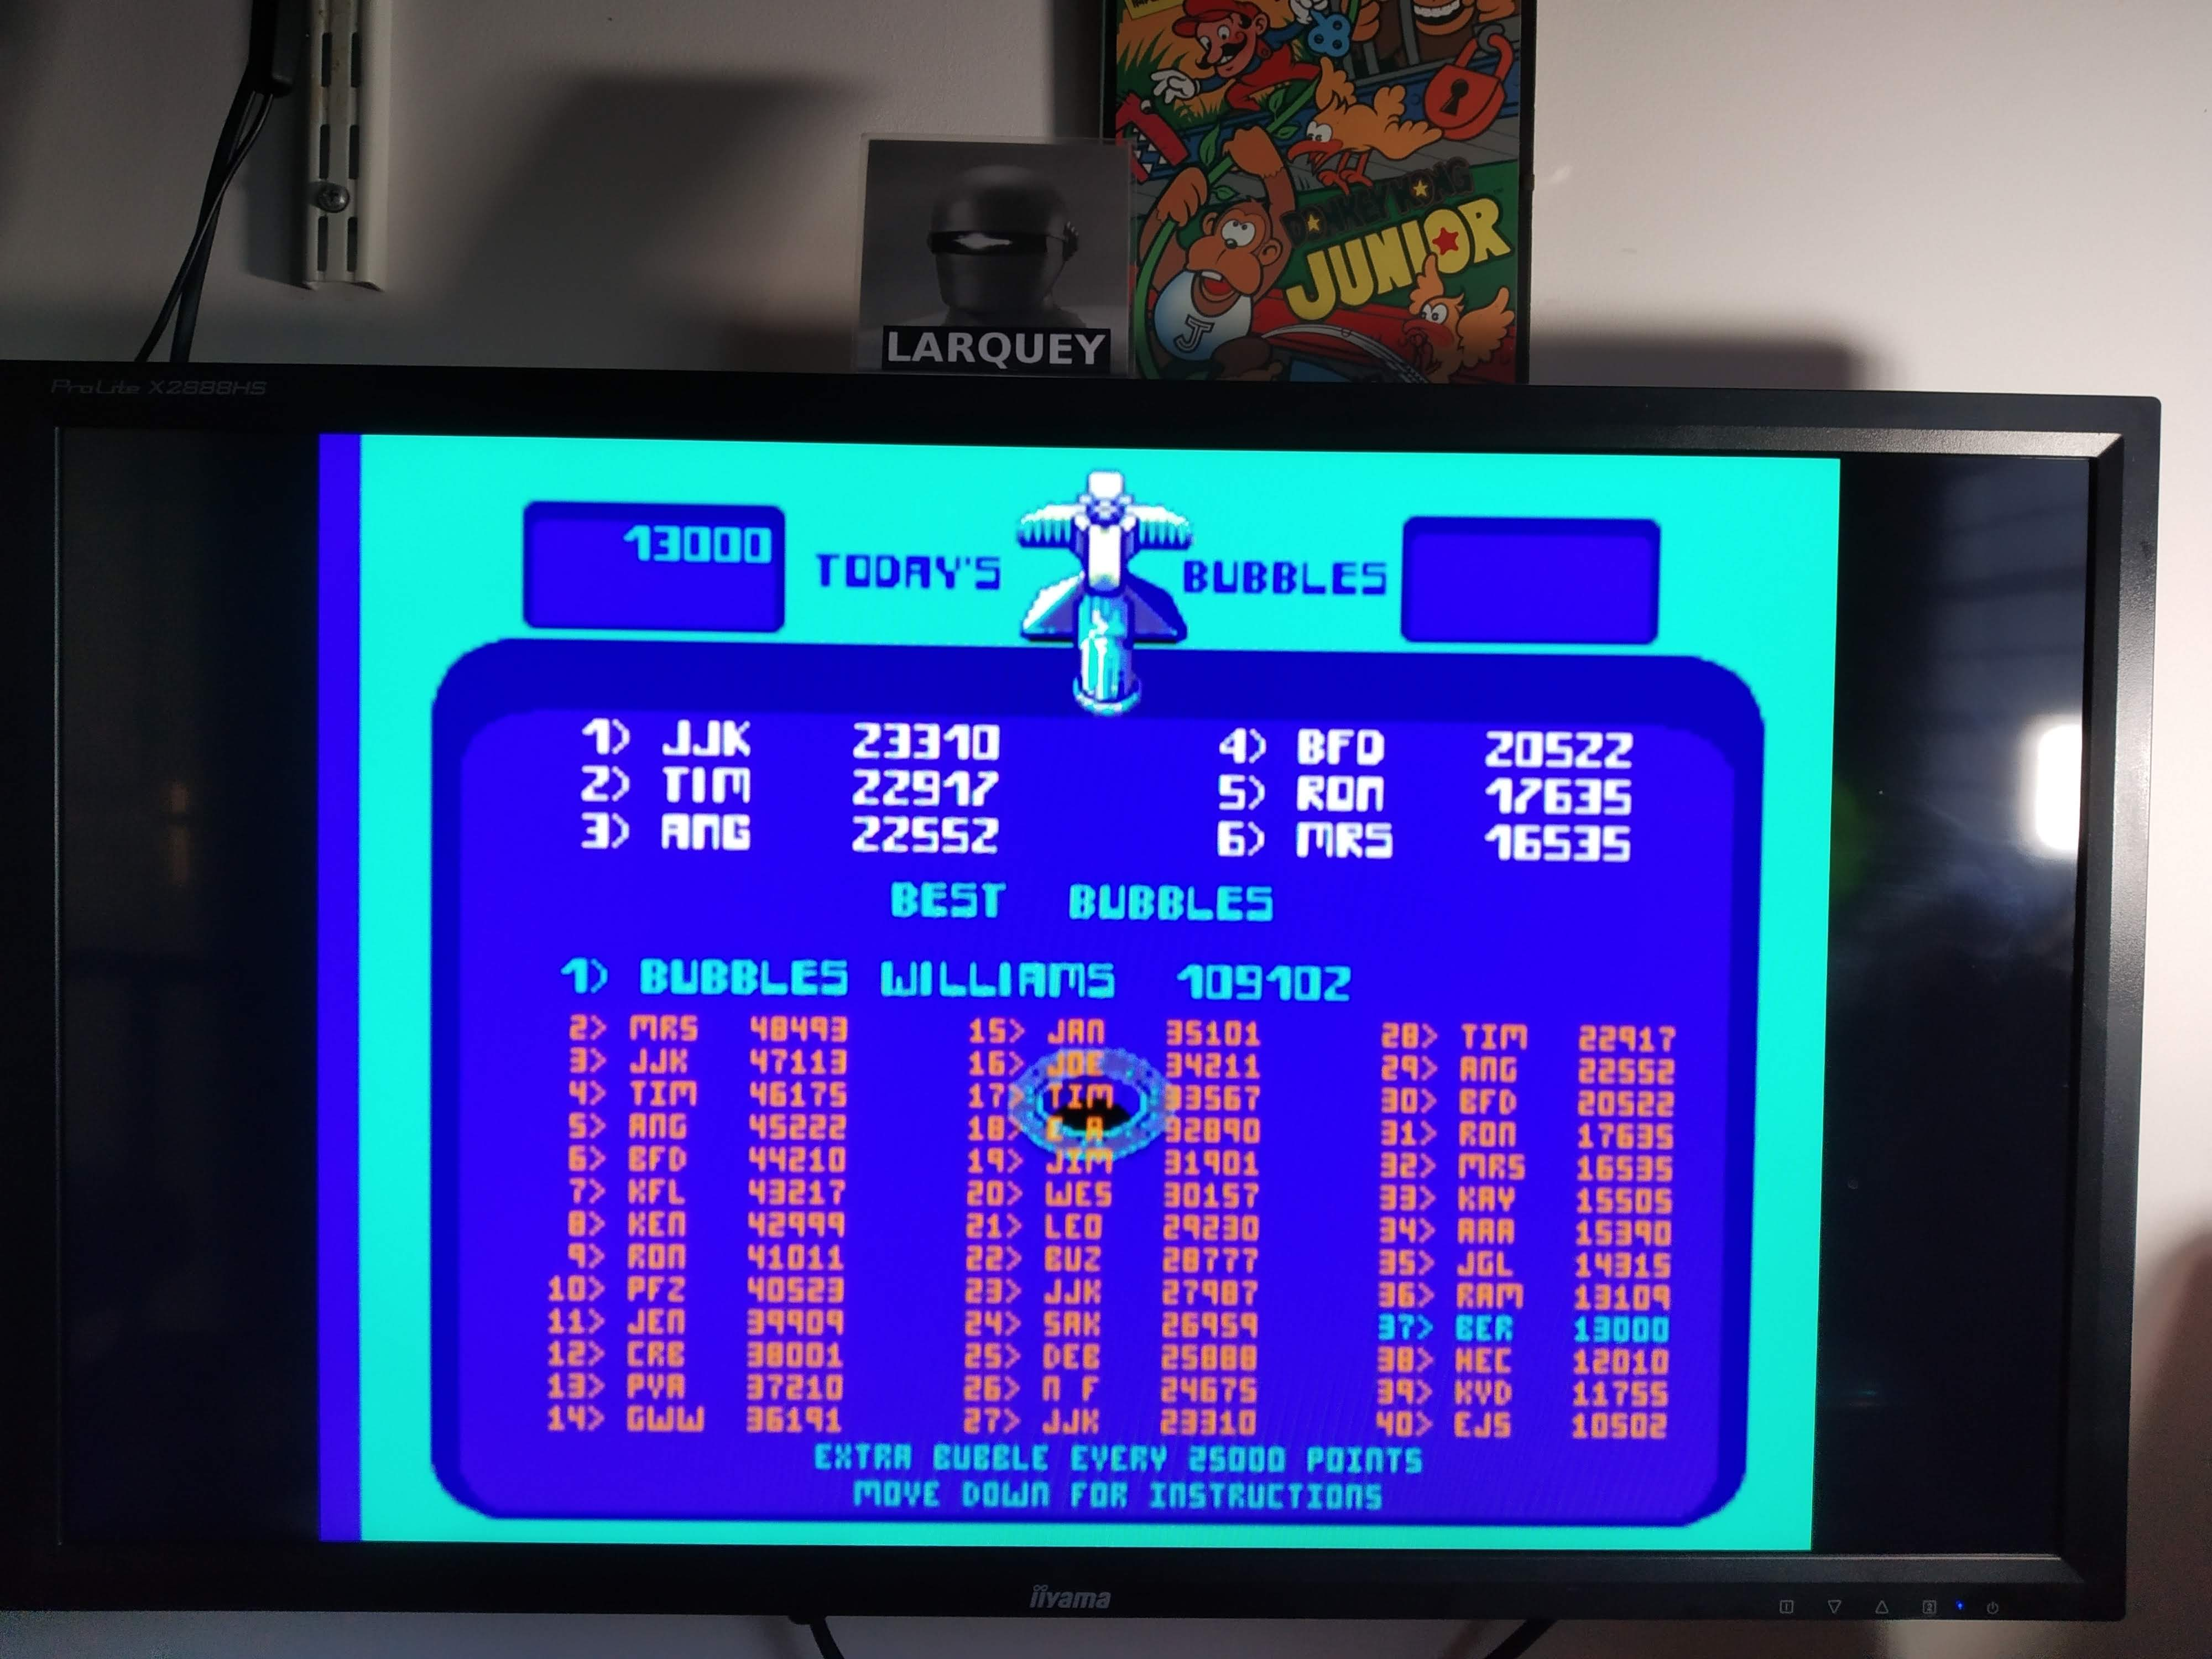 Larquey: Midway Arcade Treasures: Bubbles (Playstation 2 Emulated) 13,000 points on 2020-08-02 05:25:41